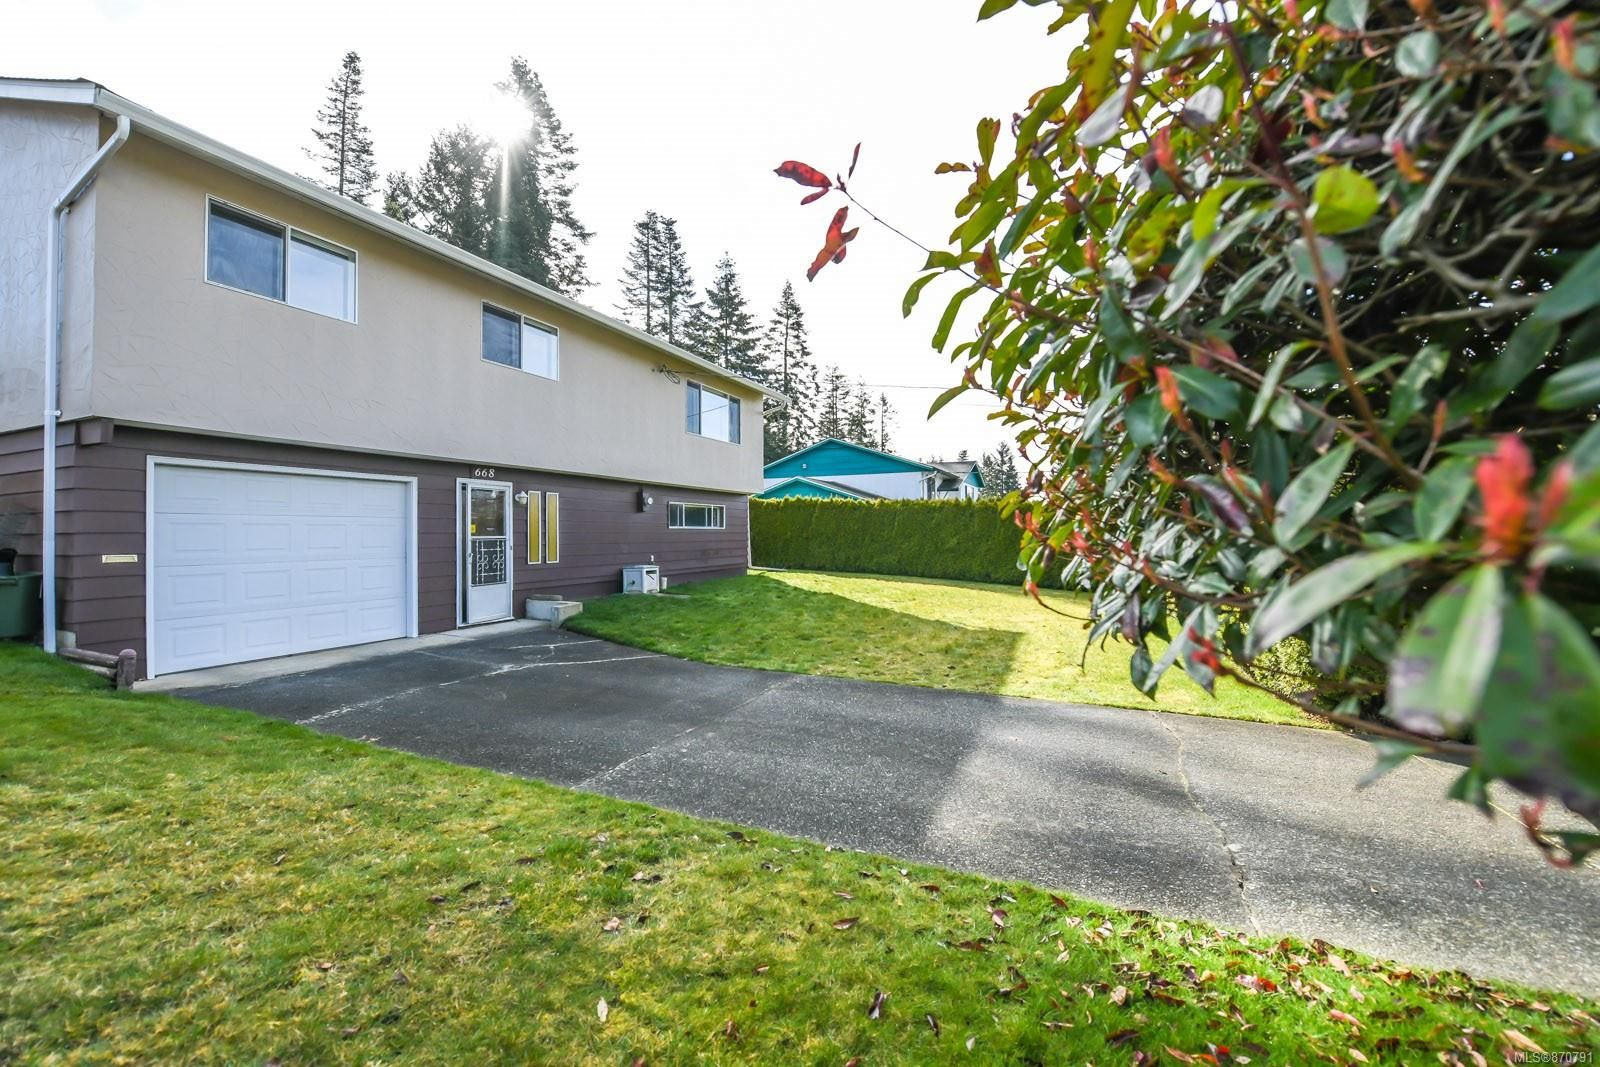 Main Photo: 668 Pritchard Rd in : CV Comox (Town of) House for sale (Comox Valley)  : MLS®# 870791